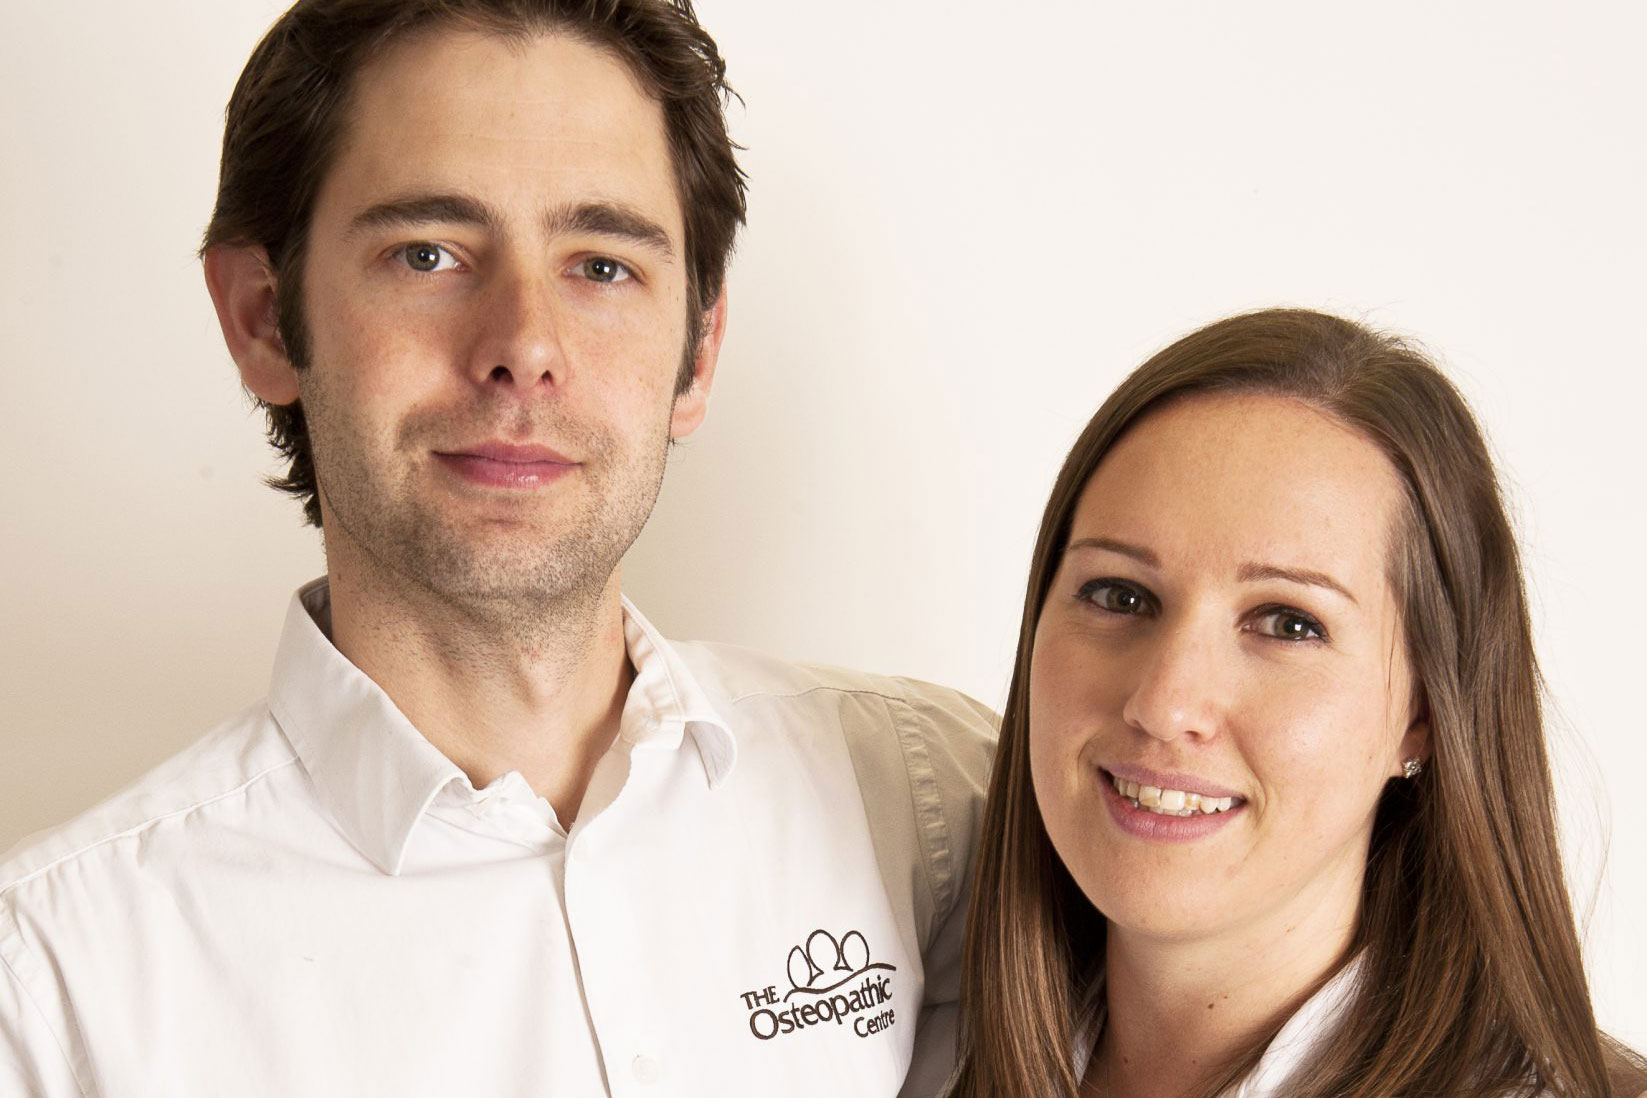 Louise North and Patrick Pearce, registered Osteopaths